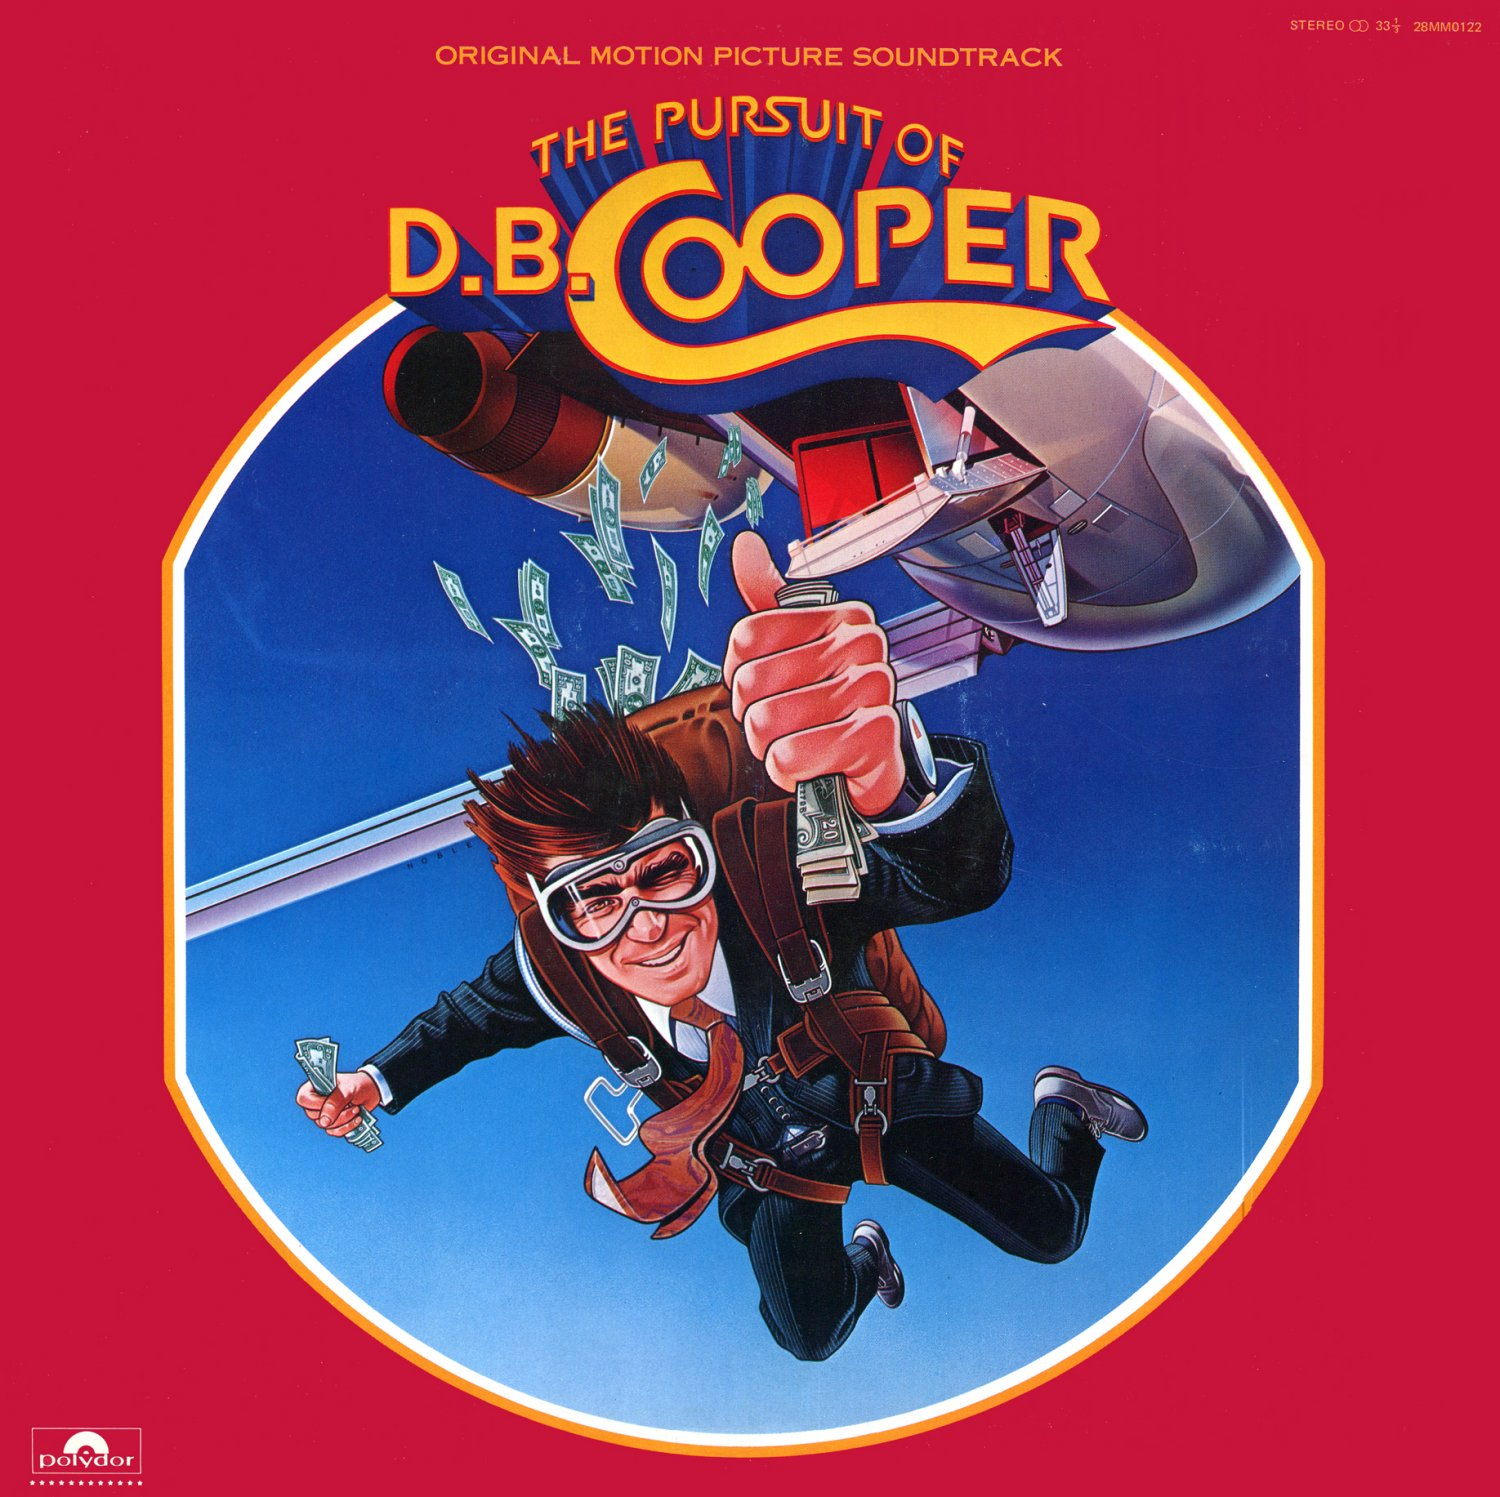 The Pursuit Of D.B. Cooper - Original Soundtrack, James Horner OST LP/CD DB